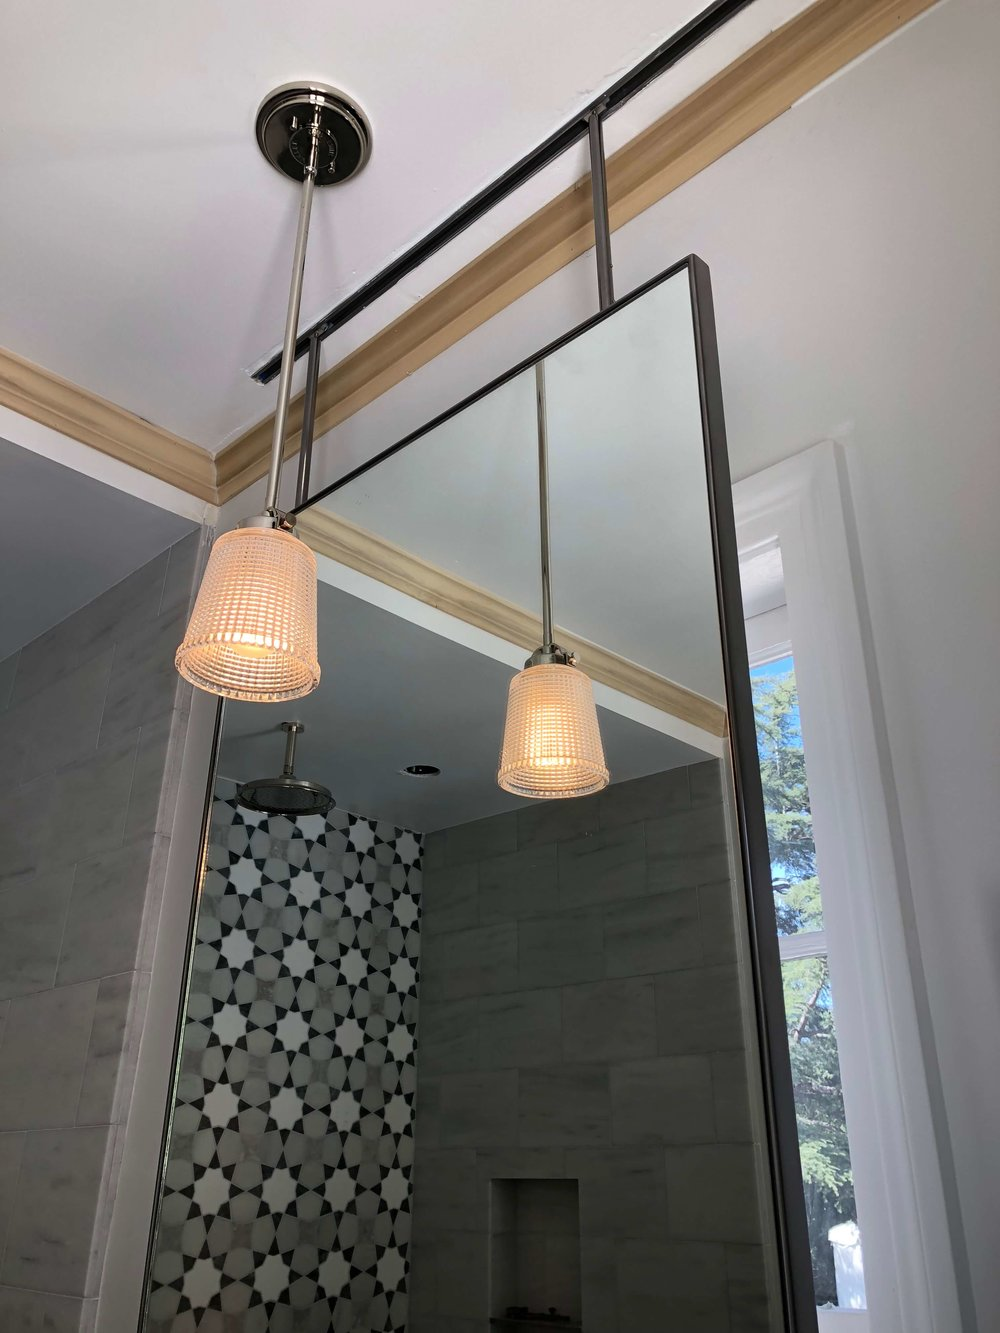 Bathroom mirror  hung over window with pendant lighting and mosaic tile in shower - Designer: Parker West Interiors, Pasadena Showcase House